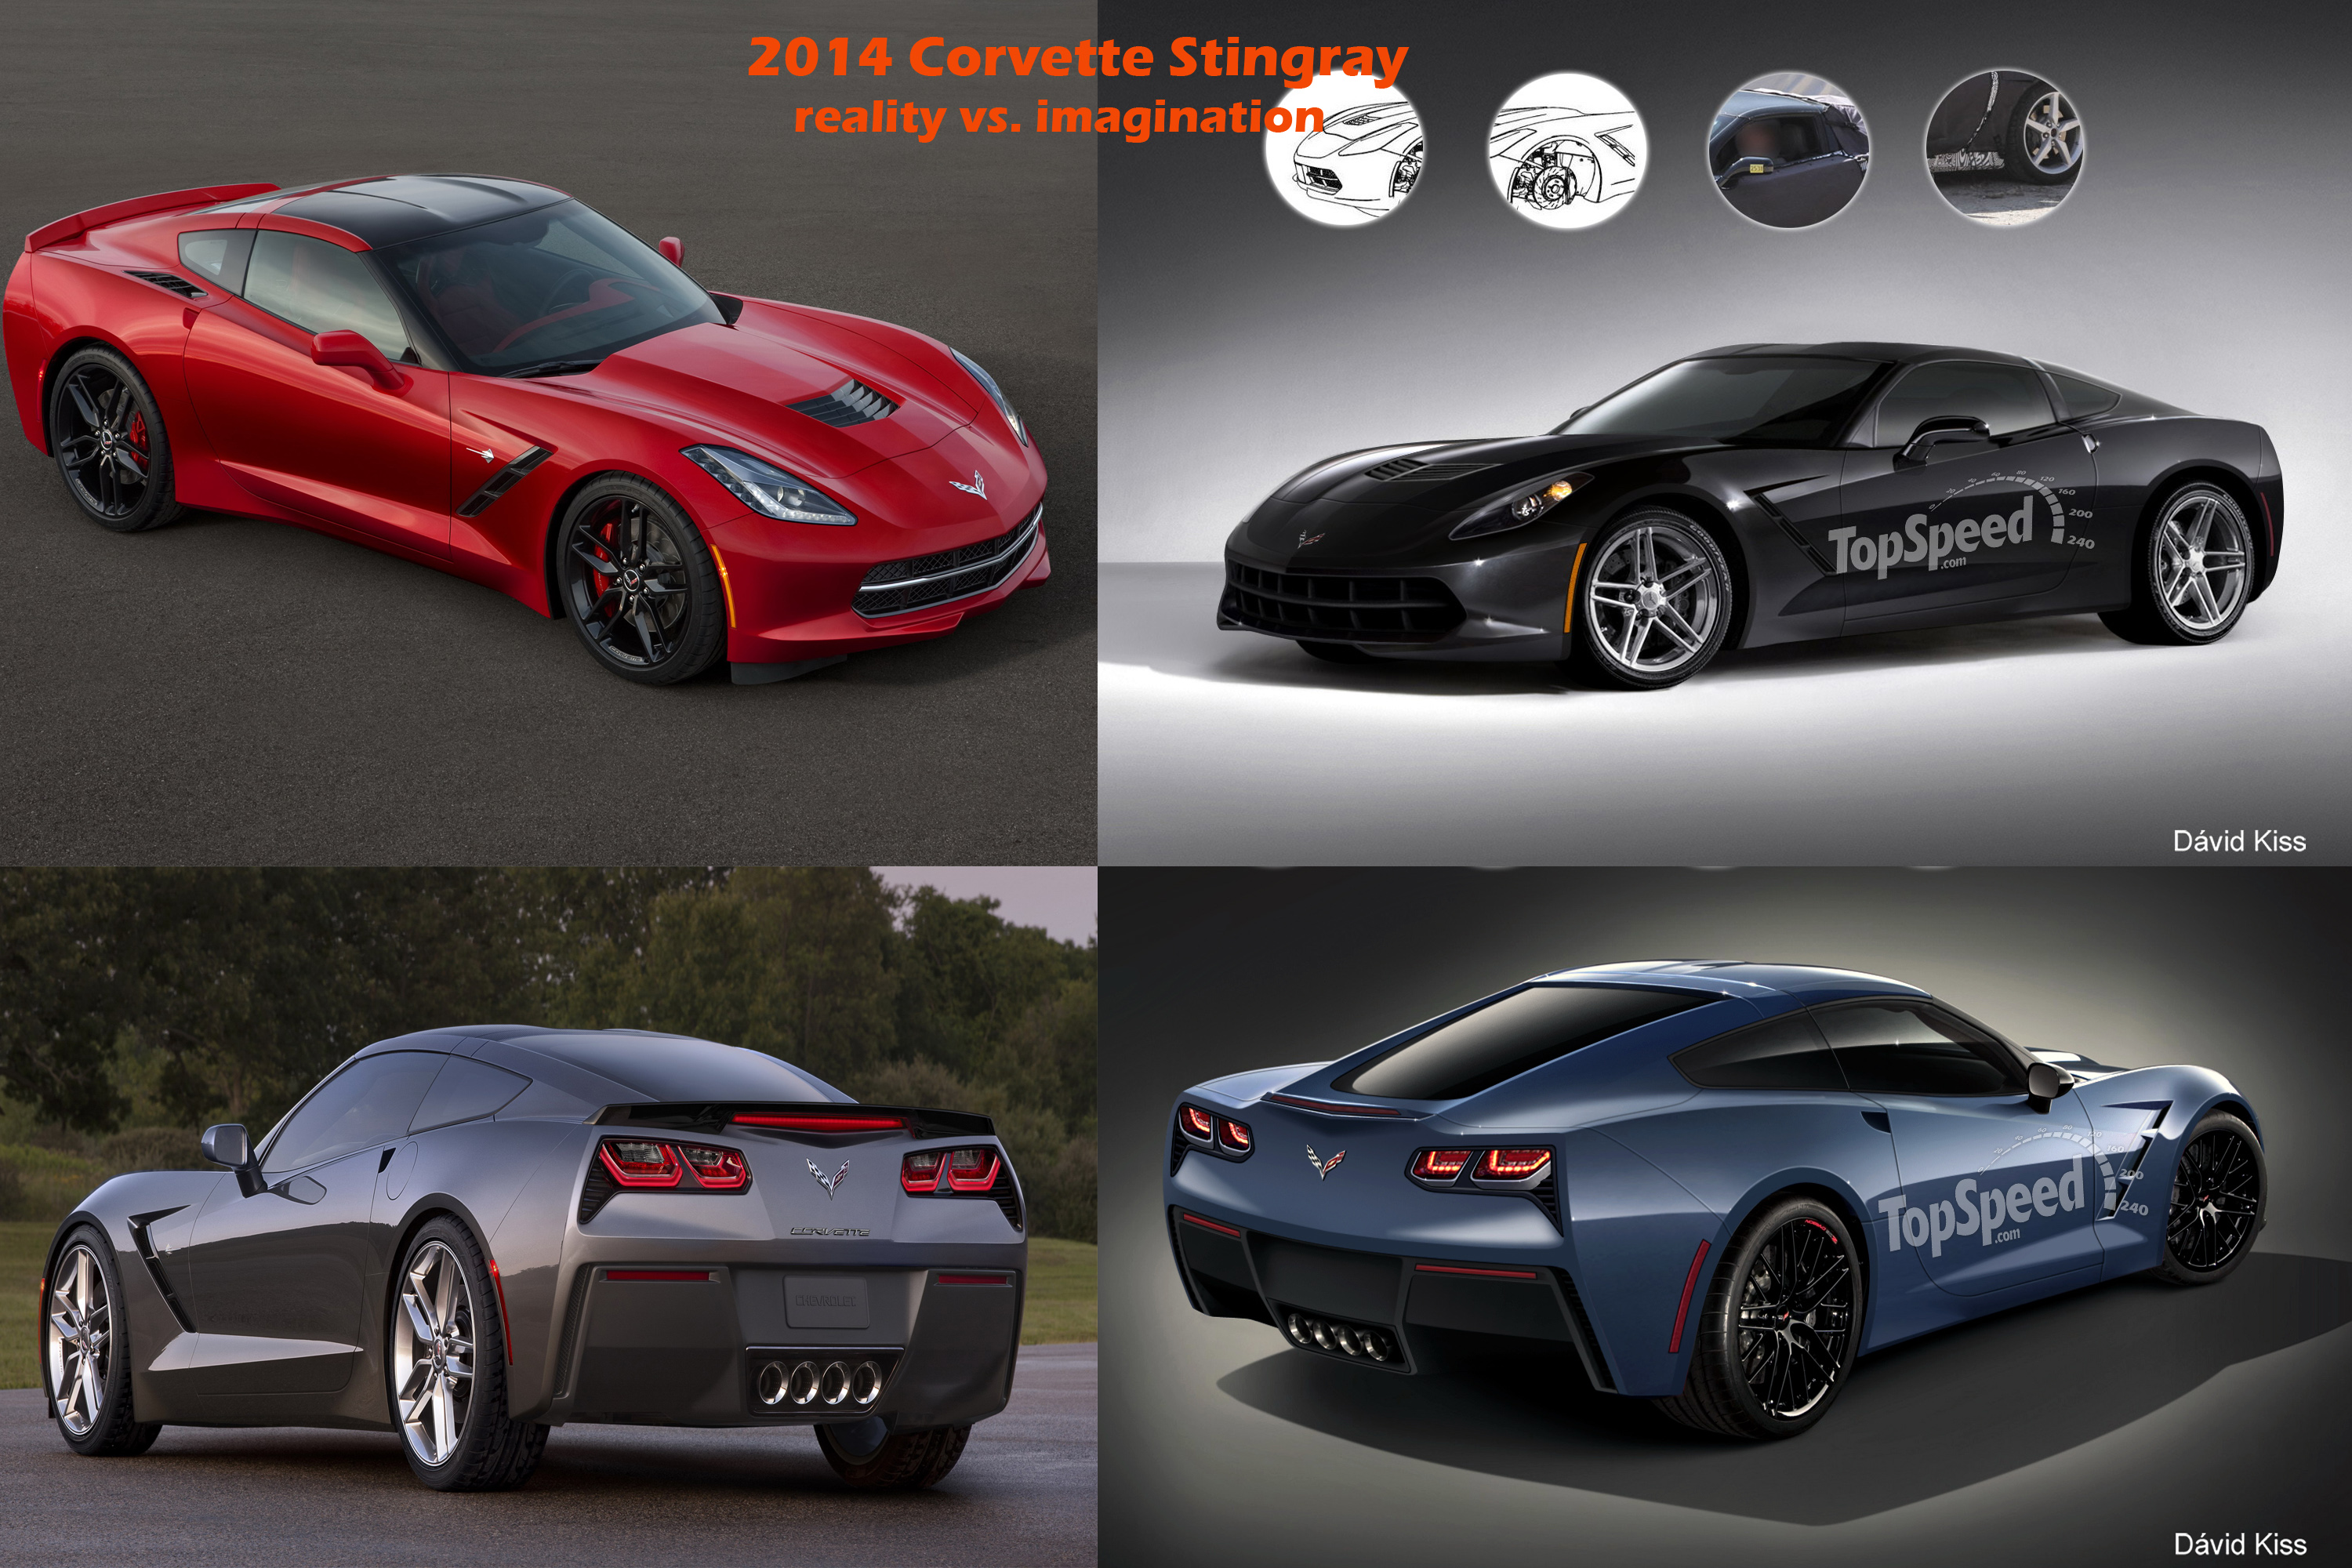 The C7 Corvette Is Out Renderings Vs Reality News Top Speed